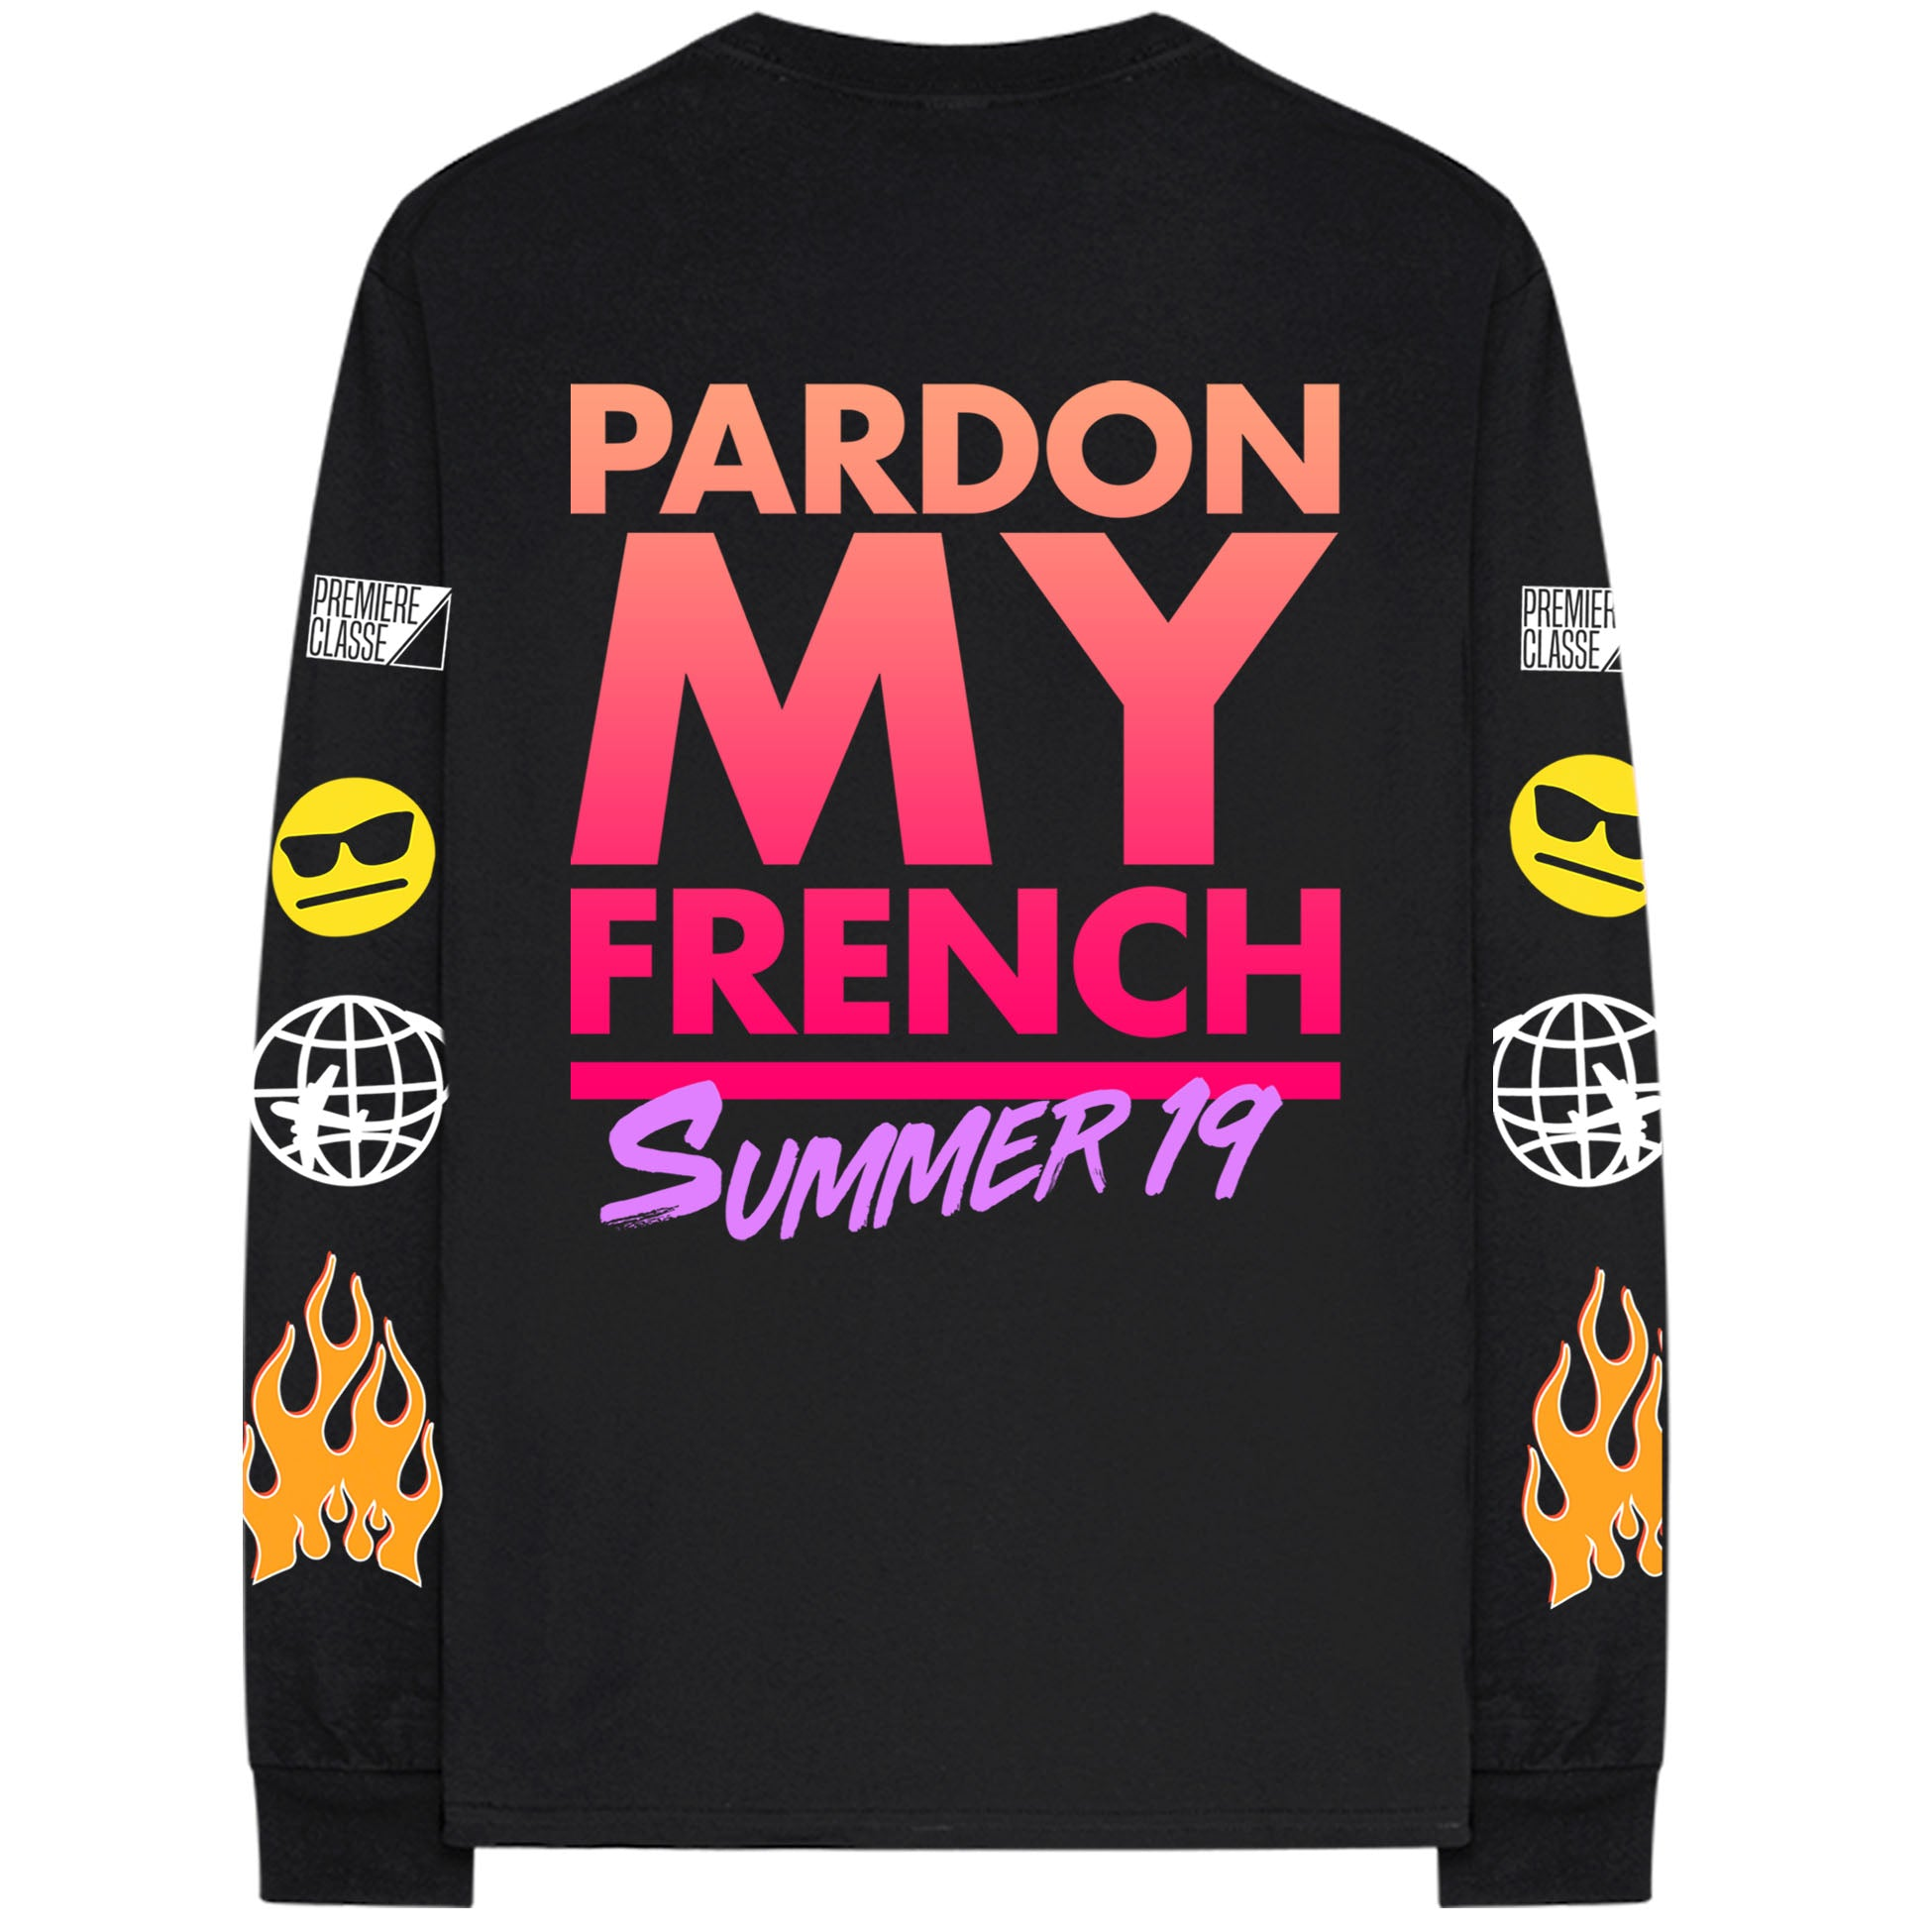 PARDON MY FRENCH SUMMER 19 BLACK L/SLEEVES TSHIRT